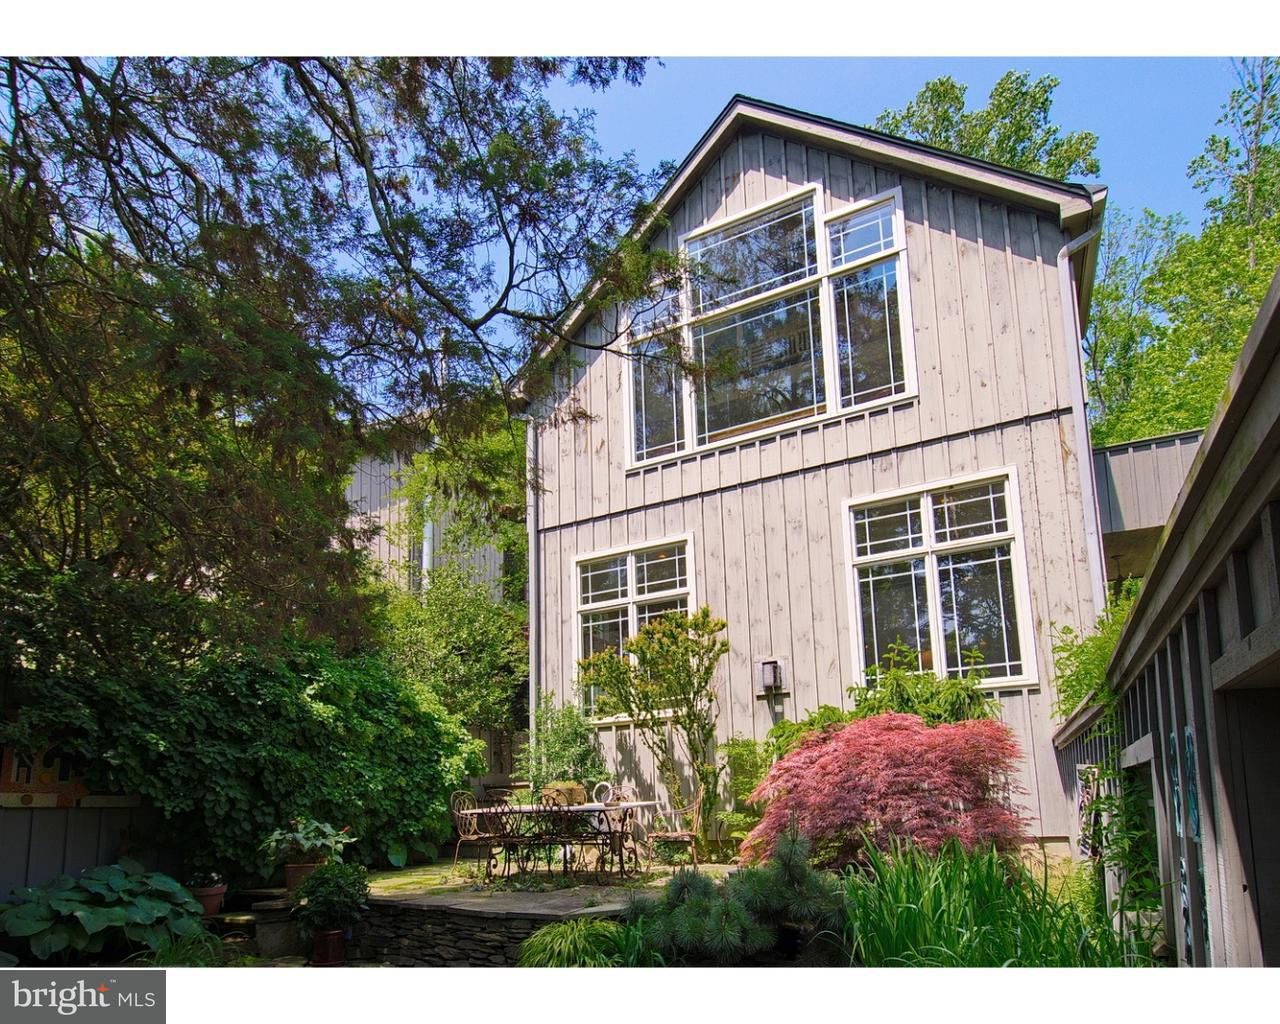 45 RIVER RD, POINT PLEASANT - Listed at $795,000, POINT PLEASANT